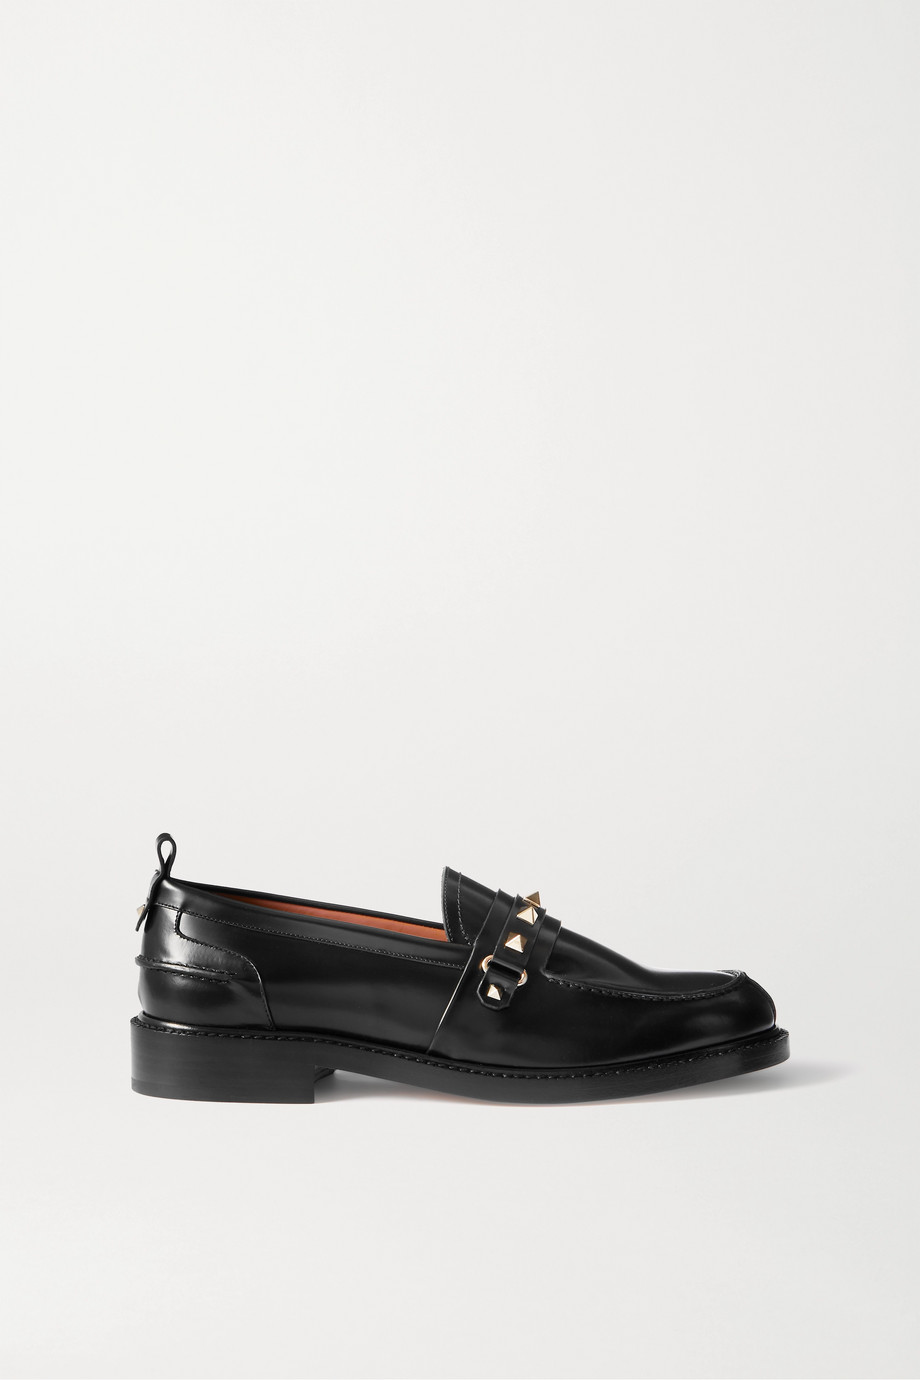 Valentino Valentino Garavani Rockstud leather loafers